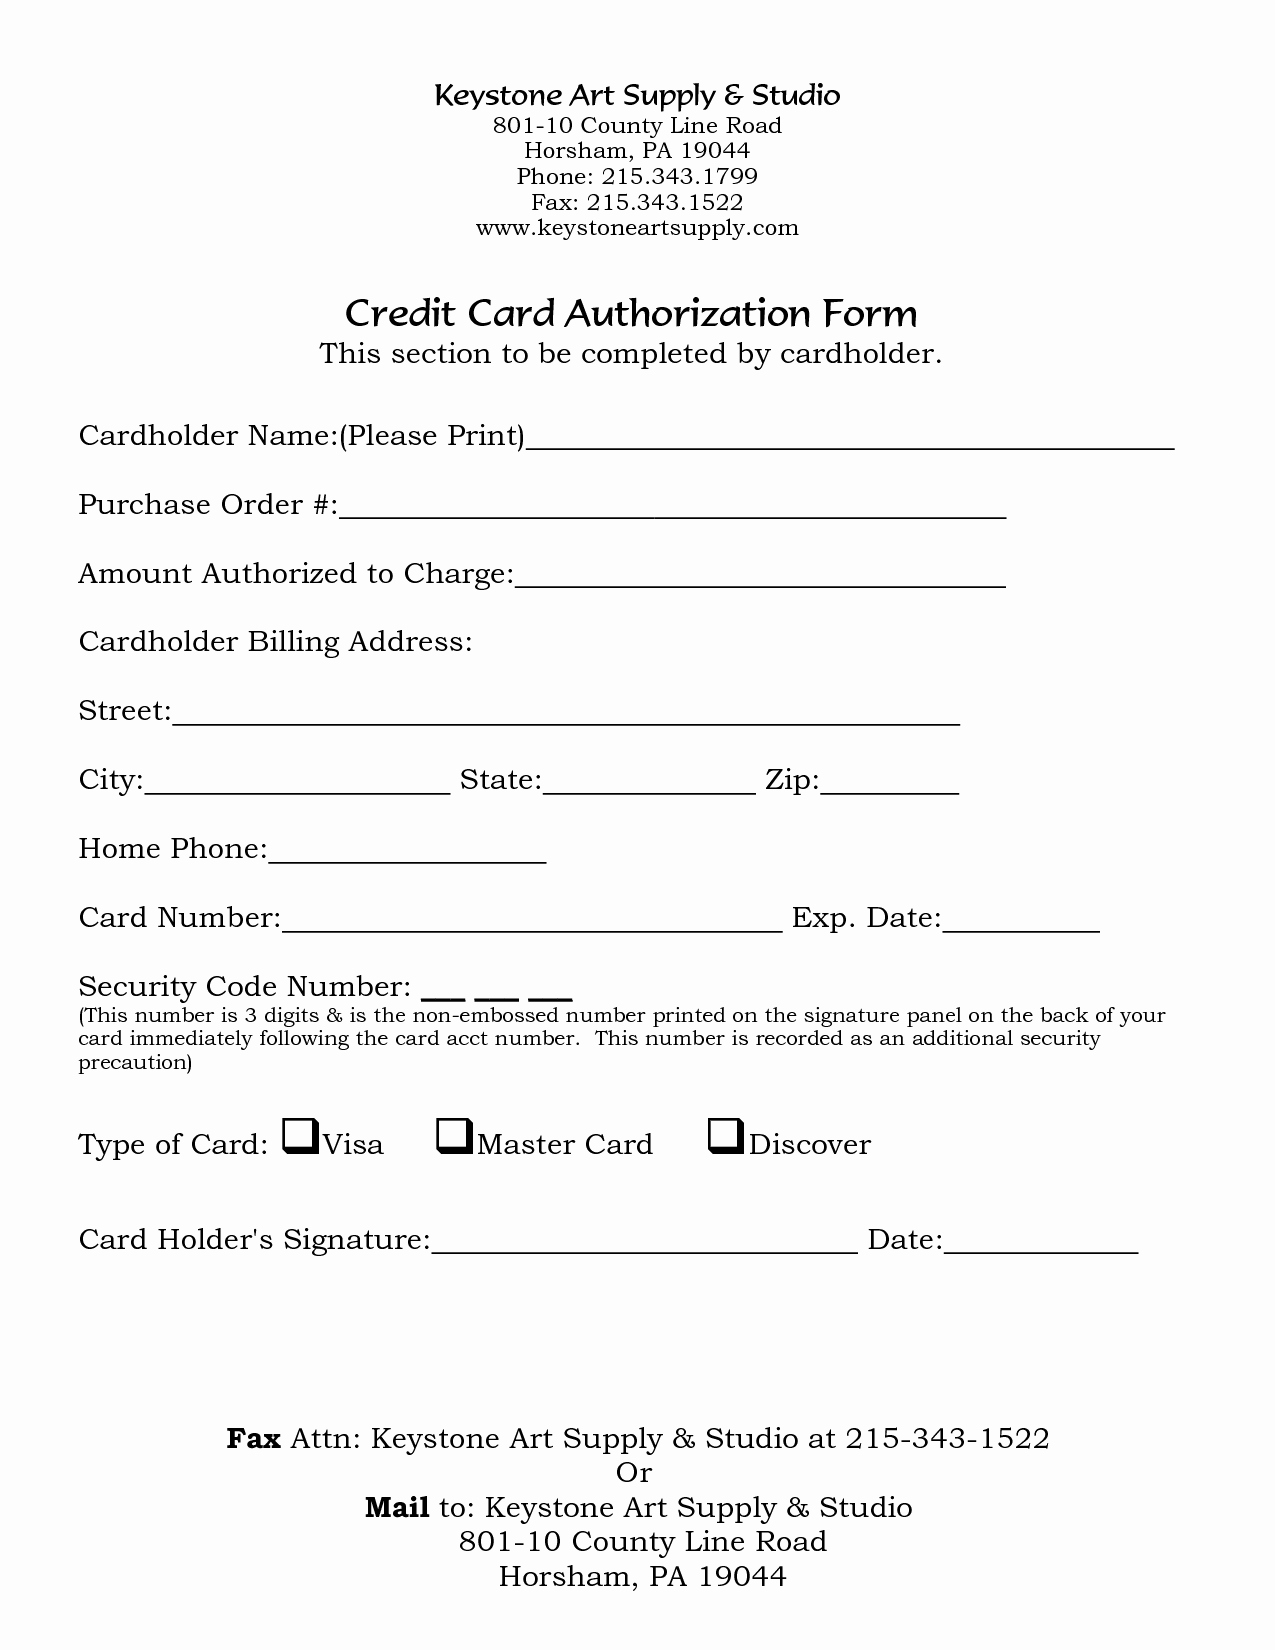 Credit Card Template Word Unique Credit Card Authorization form Word